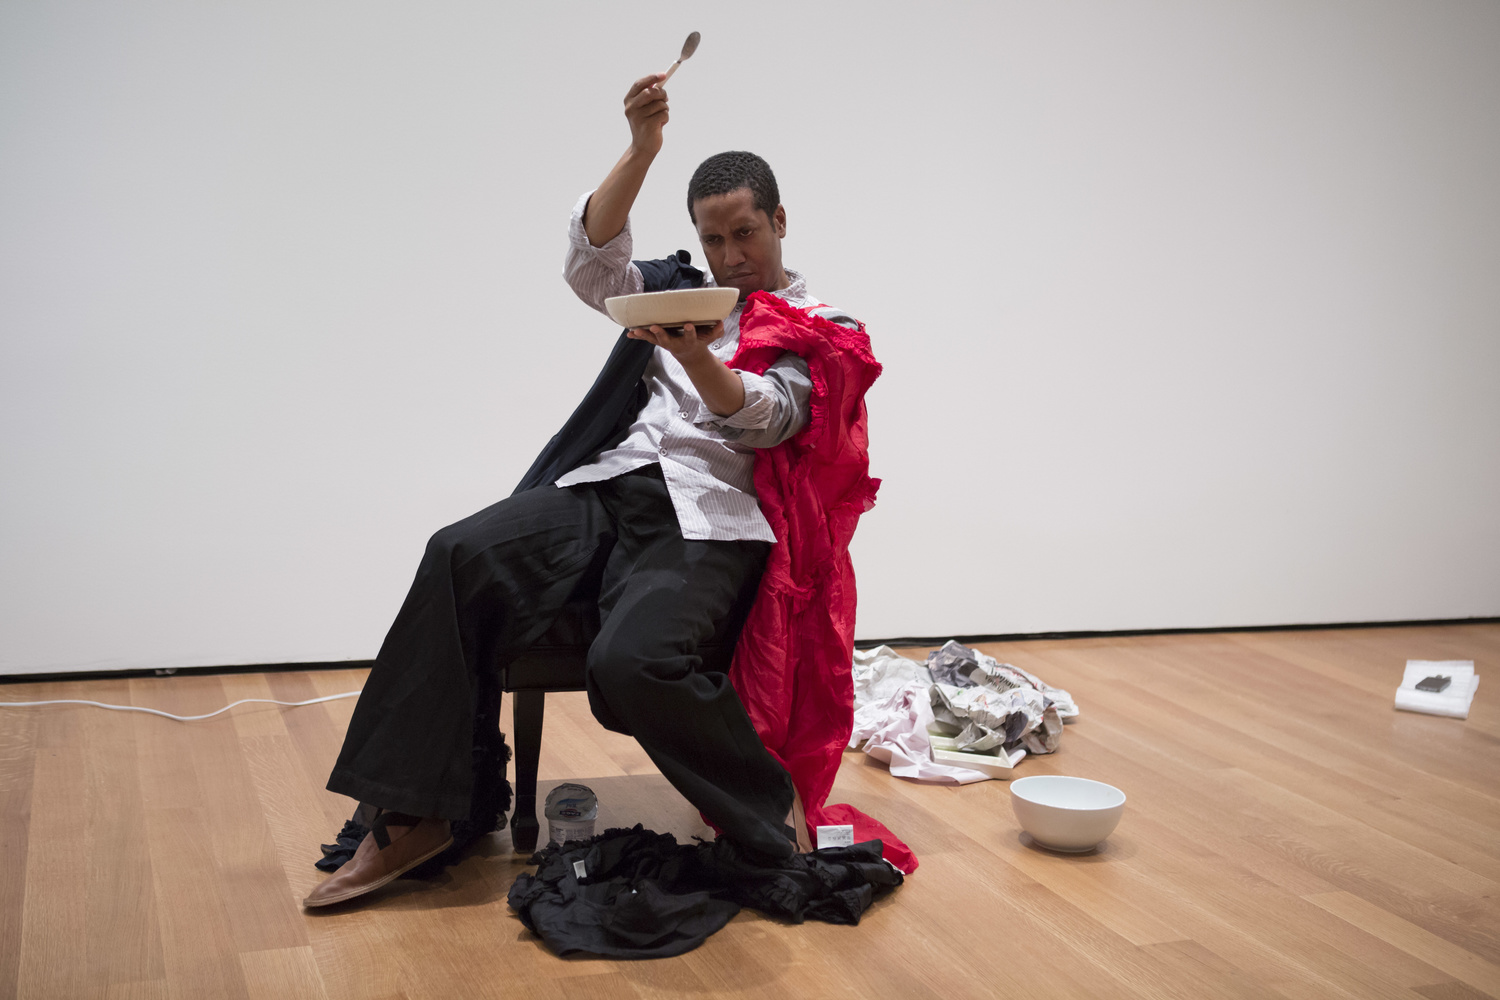 Trajal Harrell. The Return of La Argentina, 2015. The Museum of Modern Art, October 2015. Performer: Trajal Harrell. Photograph © 2015 The Museum of Modern Art, New York. Photo by Julieta Cervantes